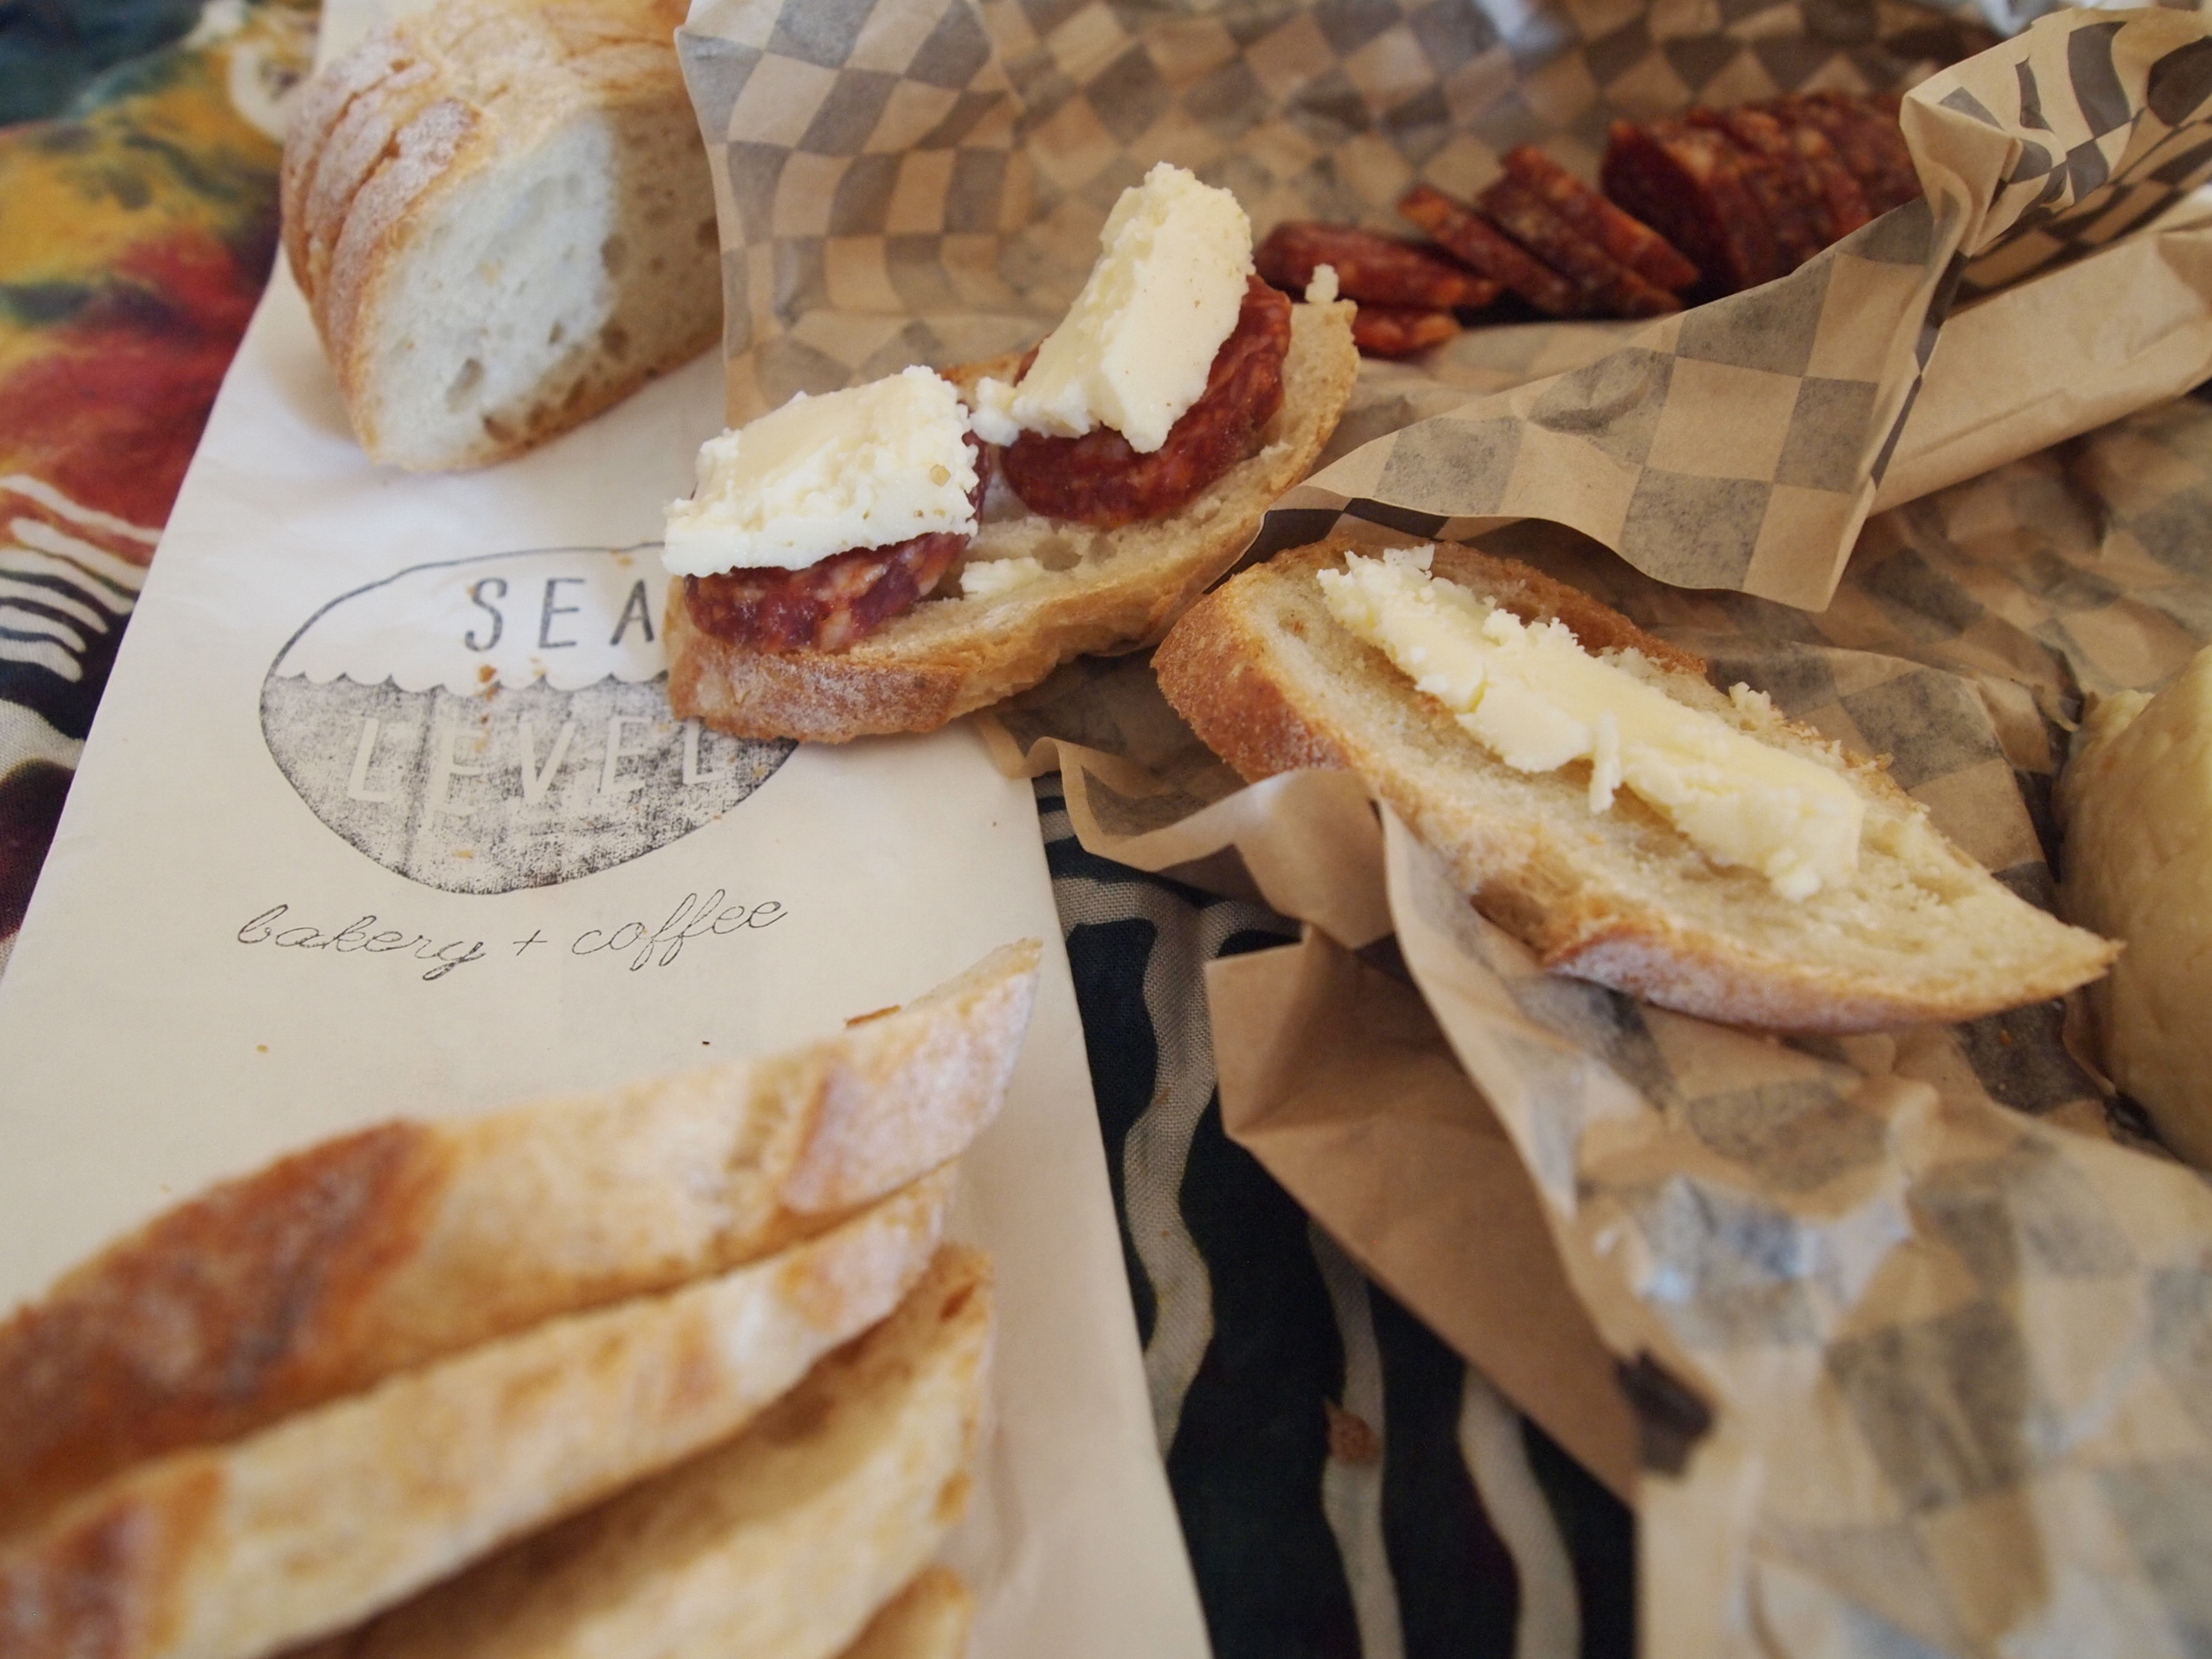 Picnic from EVOO Cannon Beach's take-away shop featuring local cheese and meats, plus bread from Sea Level Bakery.